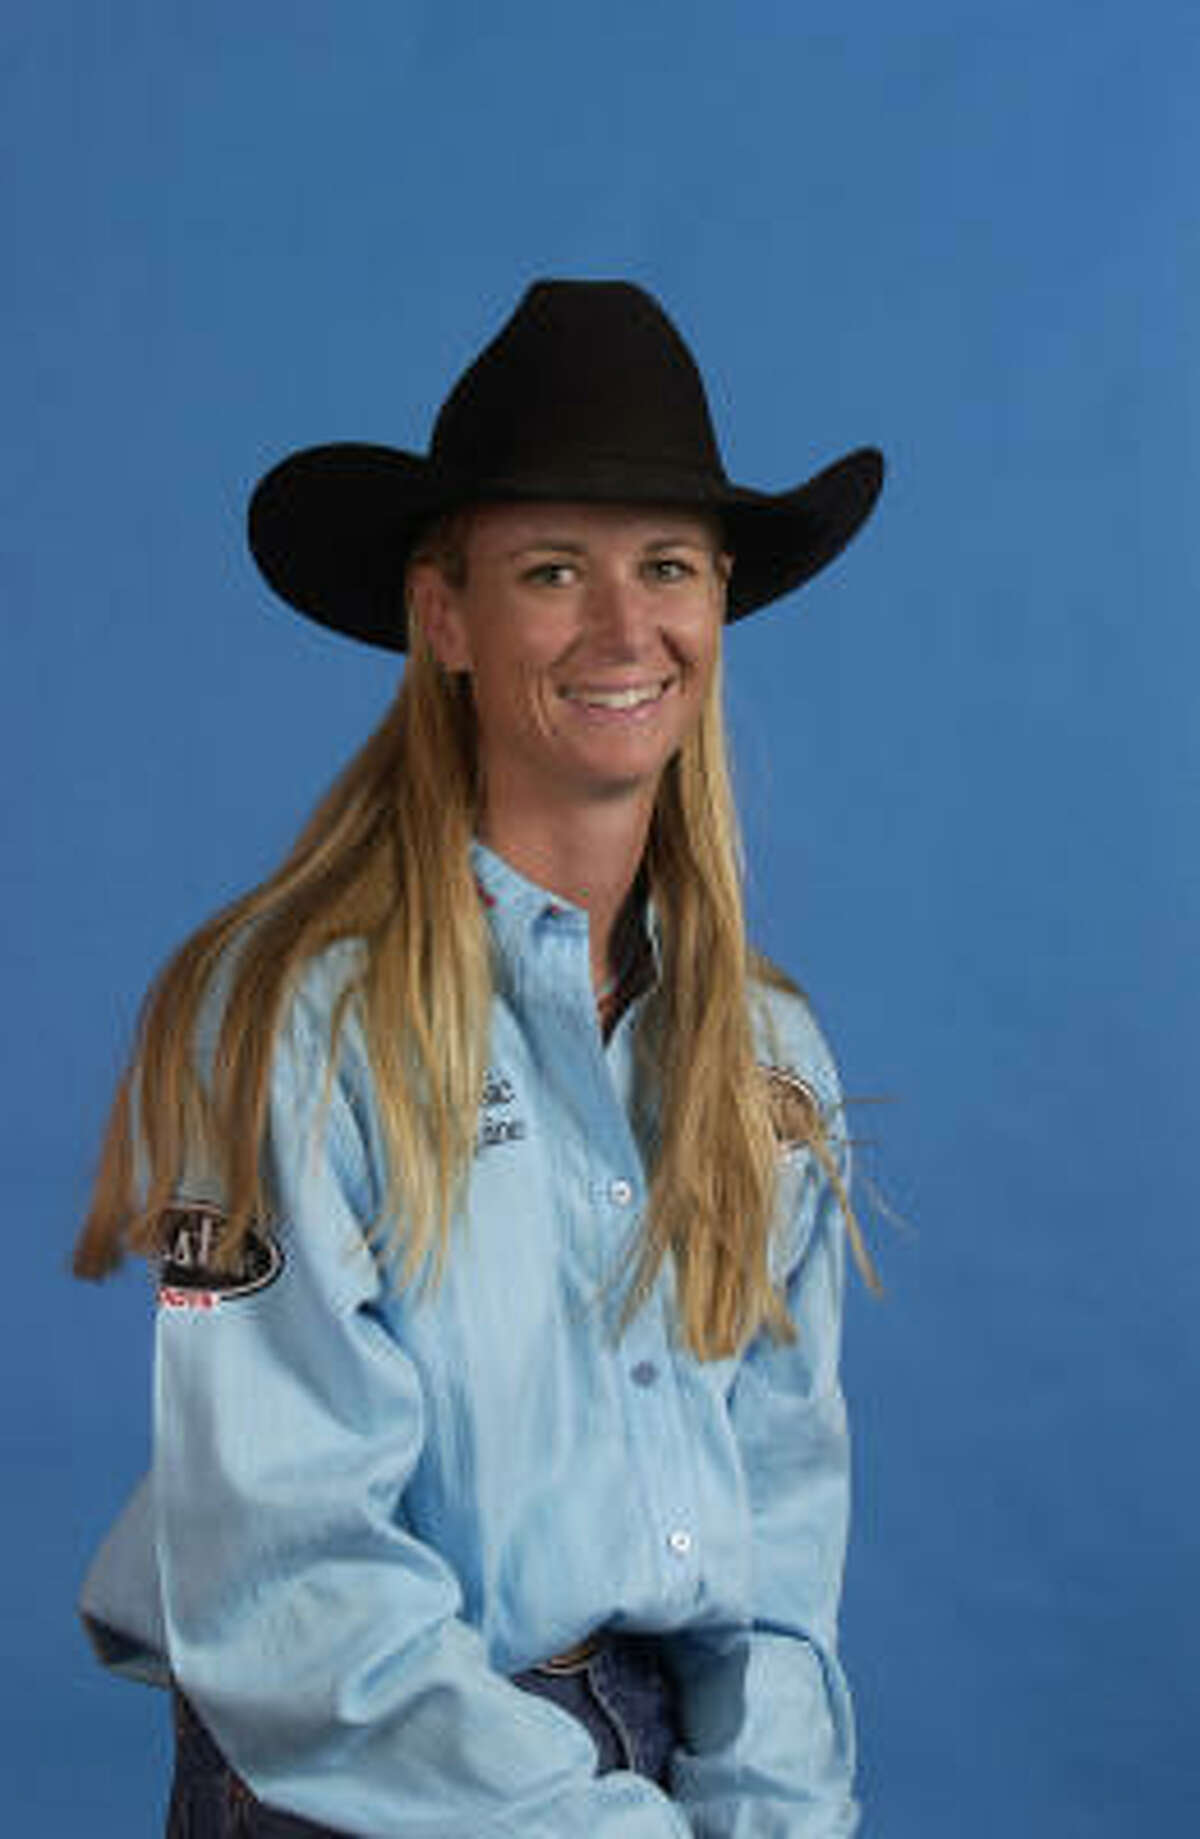 Sherry Cervi The Arizona racer is at the top of the barrel, so to speak. Last year she took the top prize at the National Finals Rodeo and has been on the winning end of many competitions throughout her career. In Houston, she has taken top honors four times.